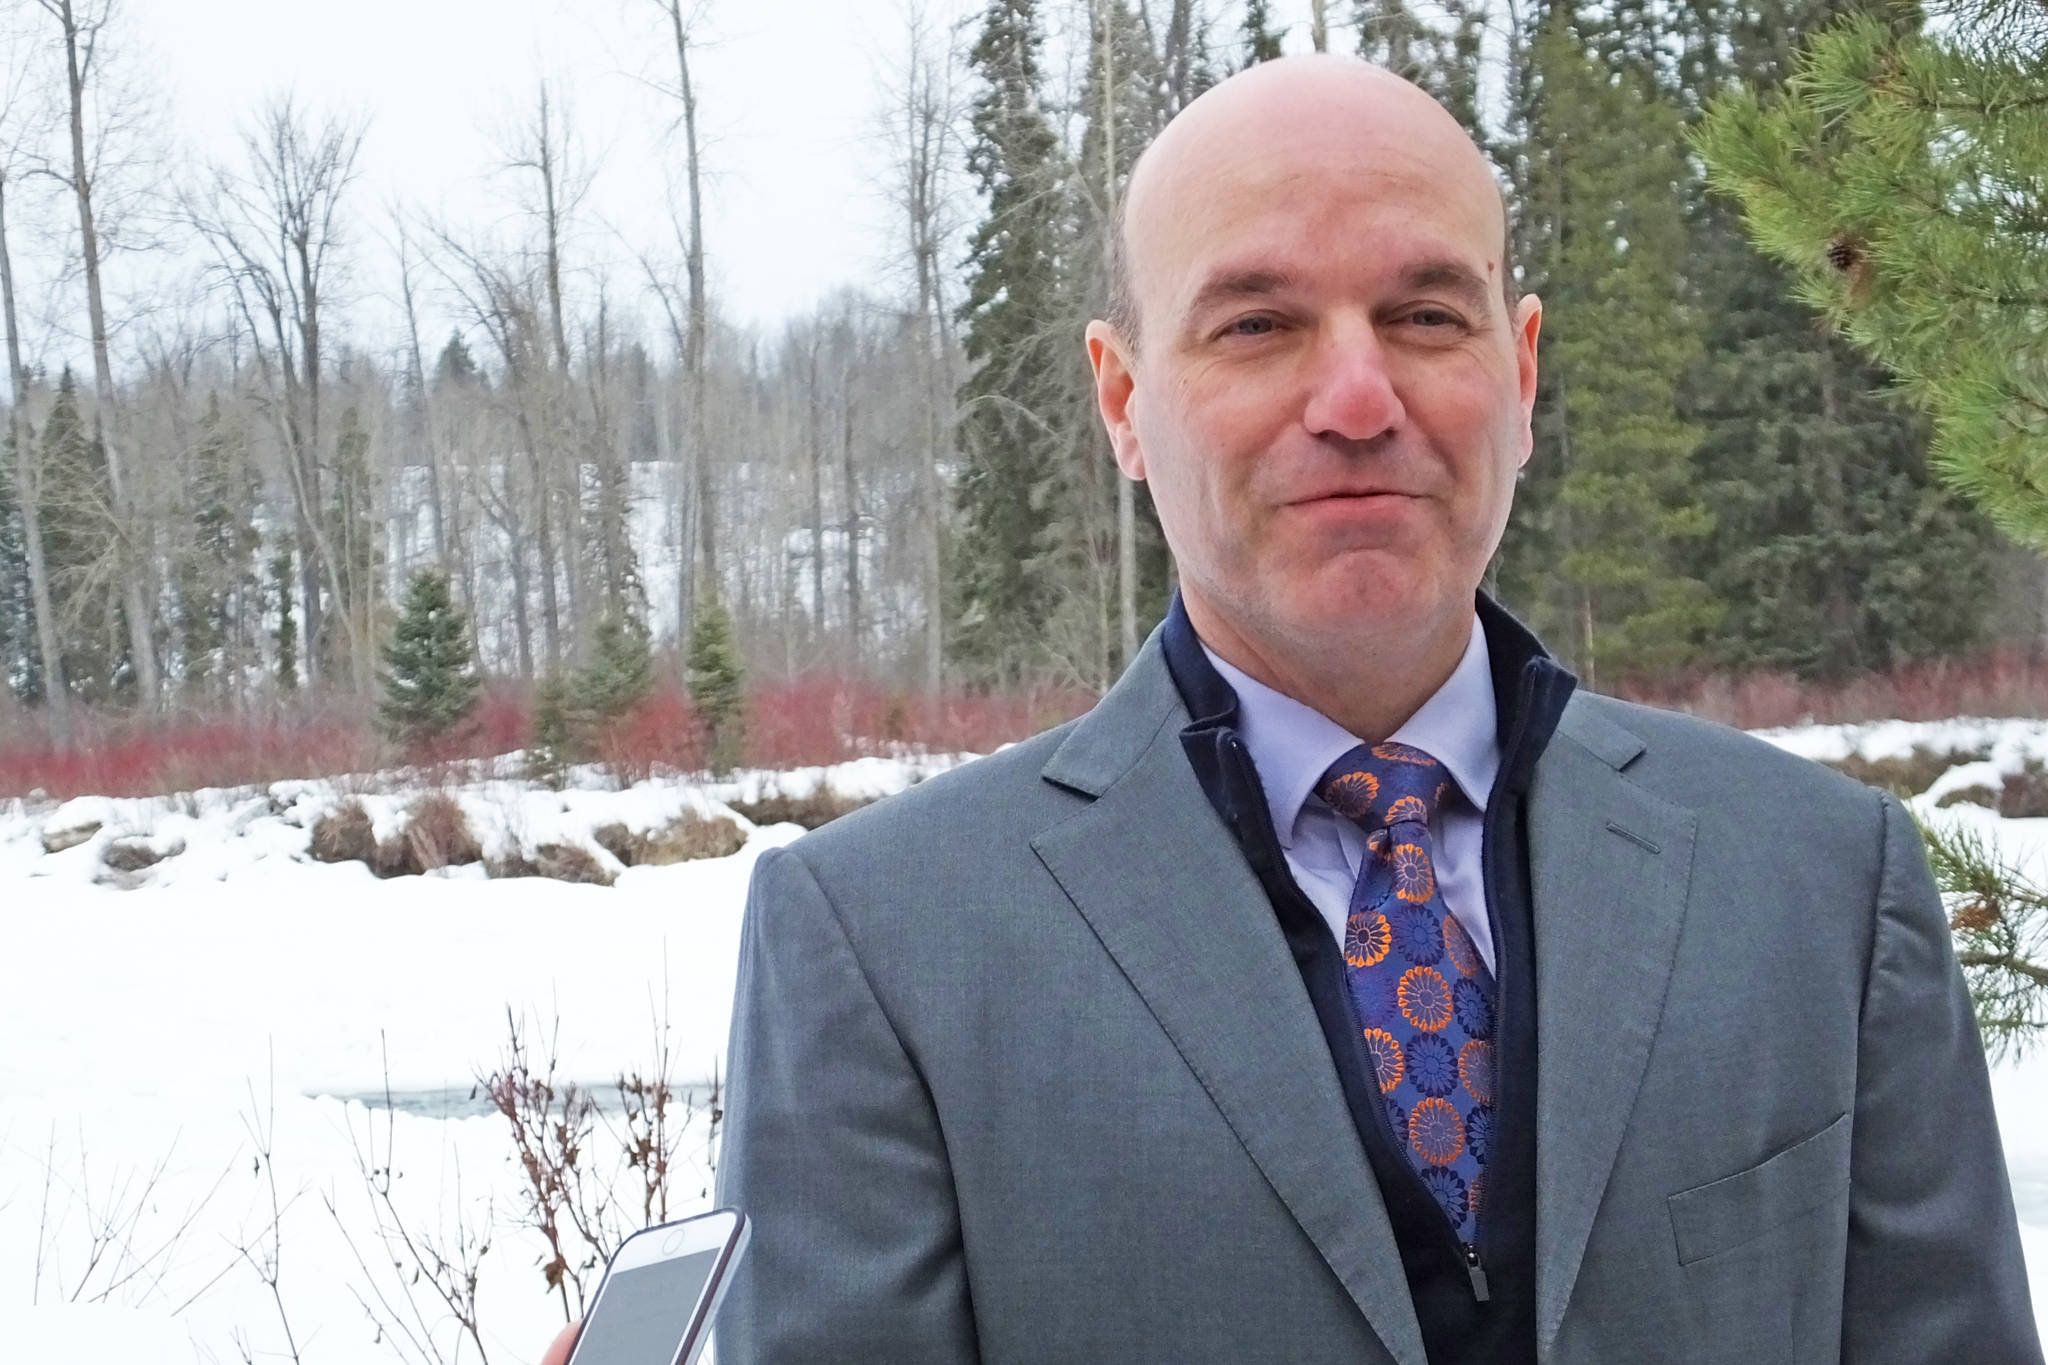 Skeena-Bulkley Valley MP Nathan Cullen announces at Riverside Park in Smithers that he is not running in the 2019 federal election. (Chris Gareau photo)